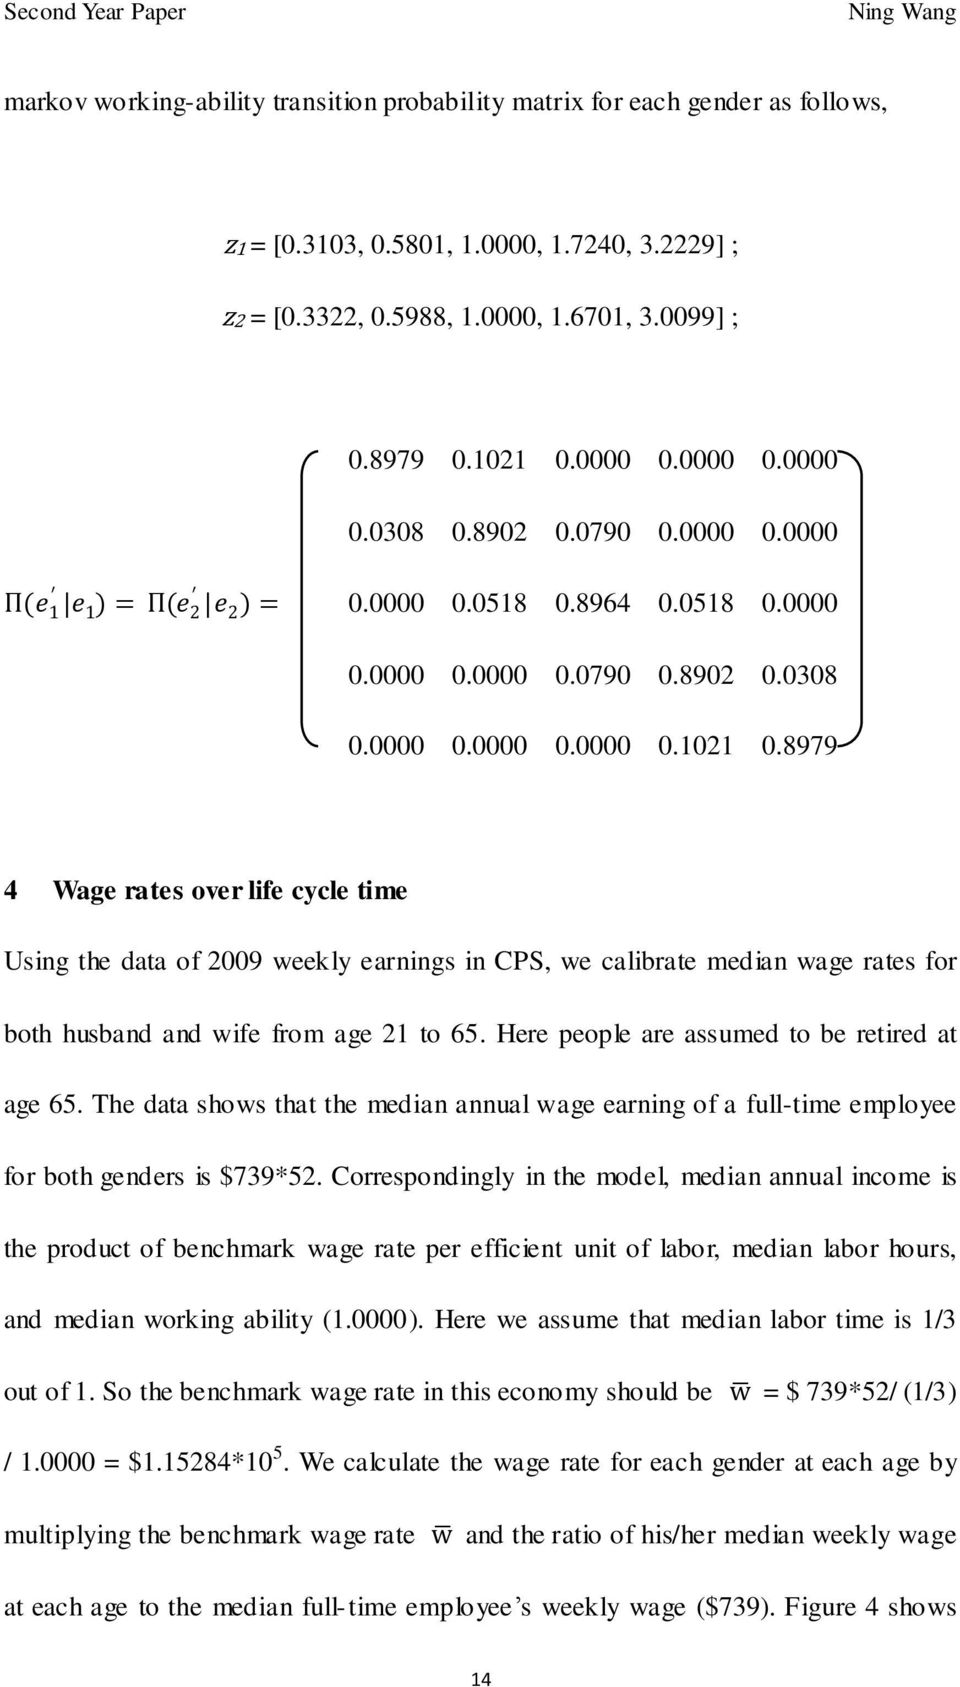 8979 4 Wage rates over life cycle time Using the data of 2009 weekly earnings in CPS, we calibrate median wage rates for both husband and wife from age 21 to 65.